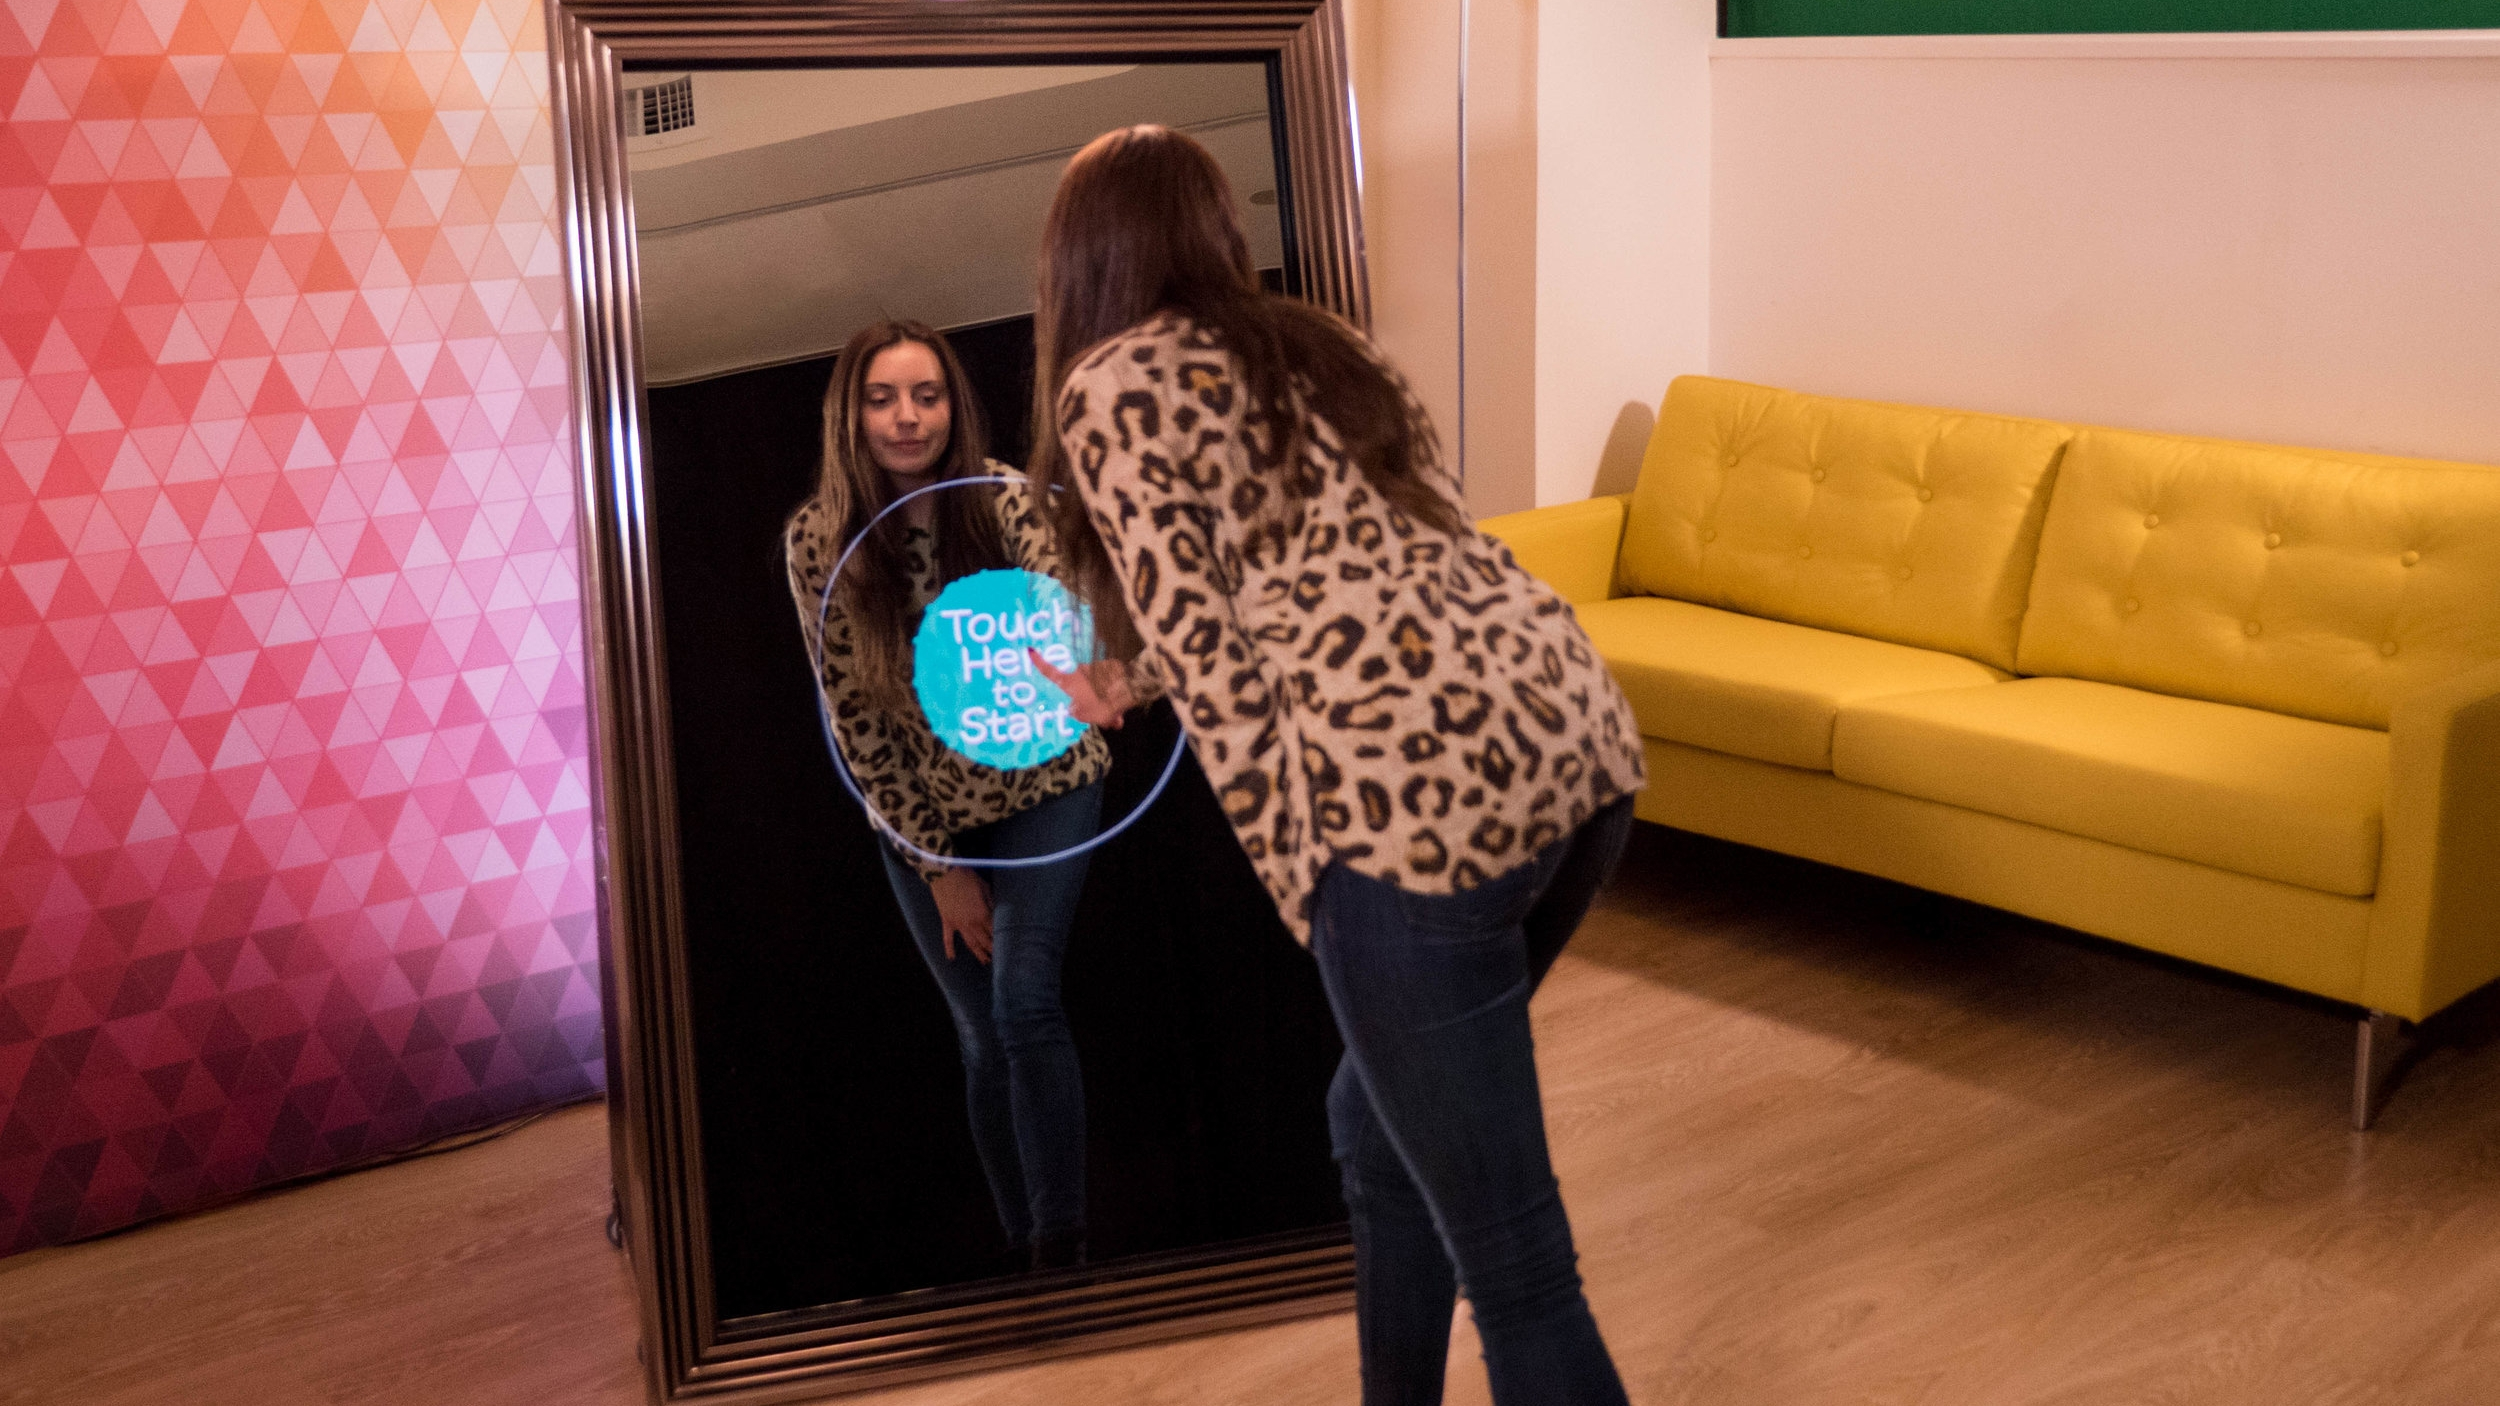 photo booths - Our super popular Selfie Photo Mirror is so much more than a traditional photo booth! See how this interactive, touchscreen, full size mirror will be a massive hit at your event.